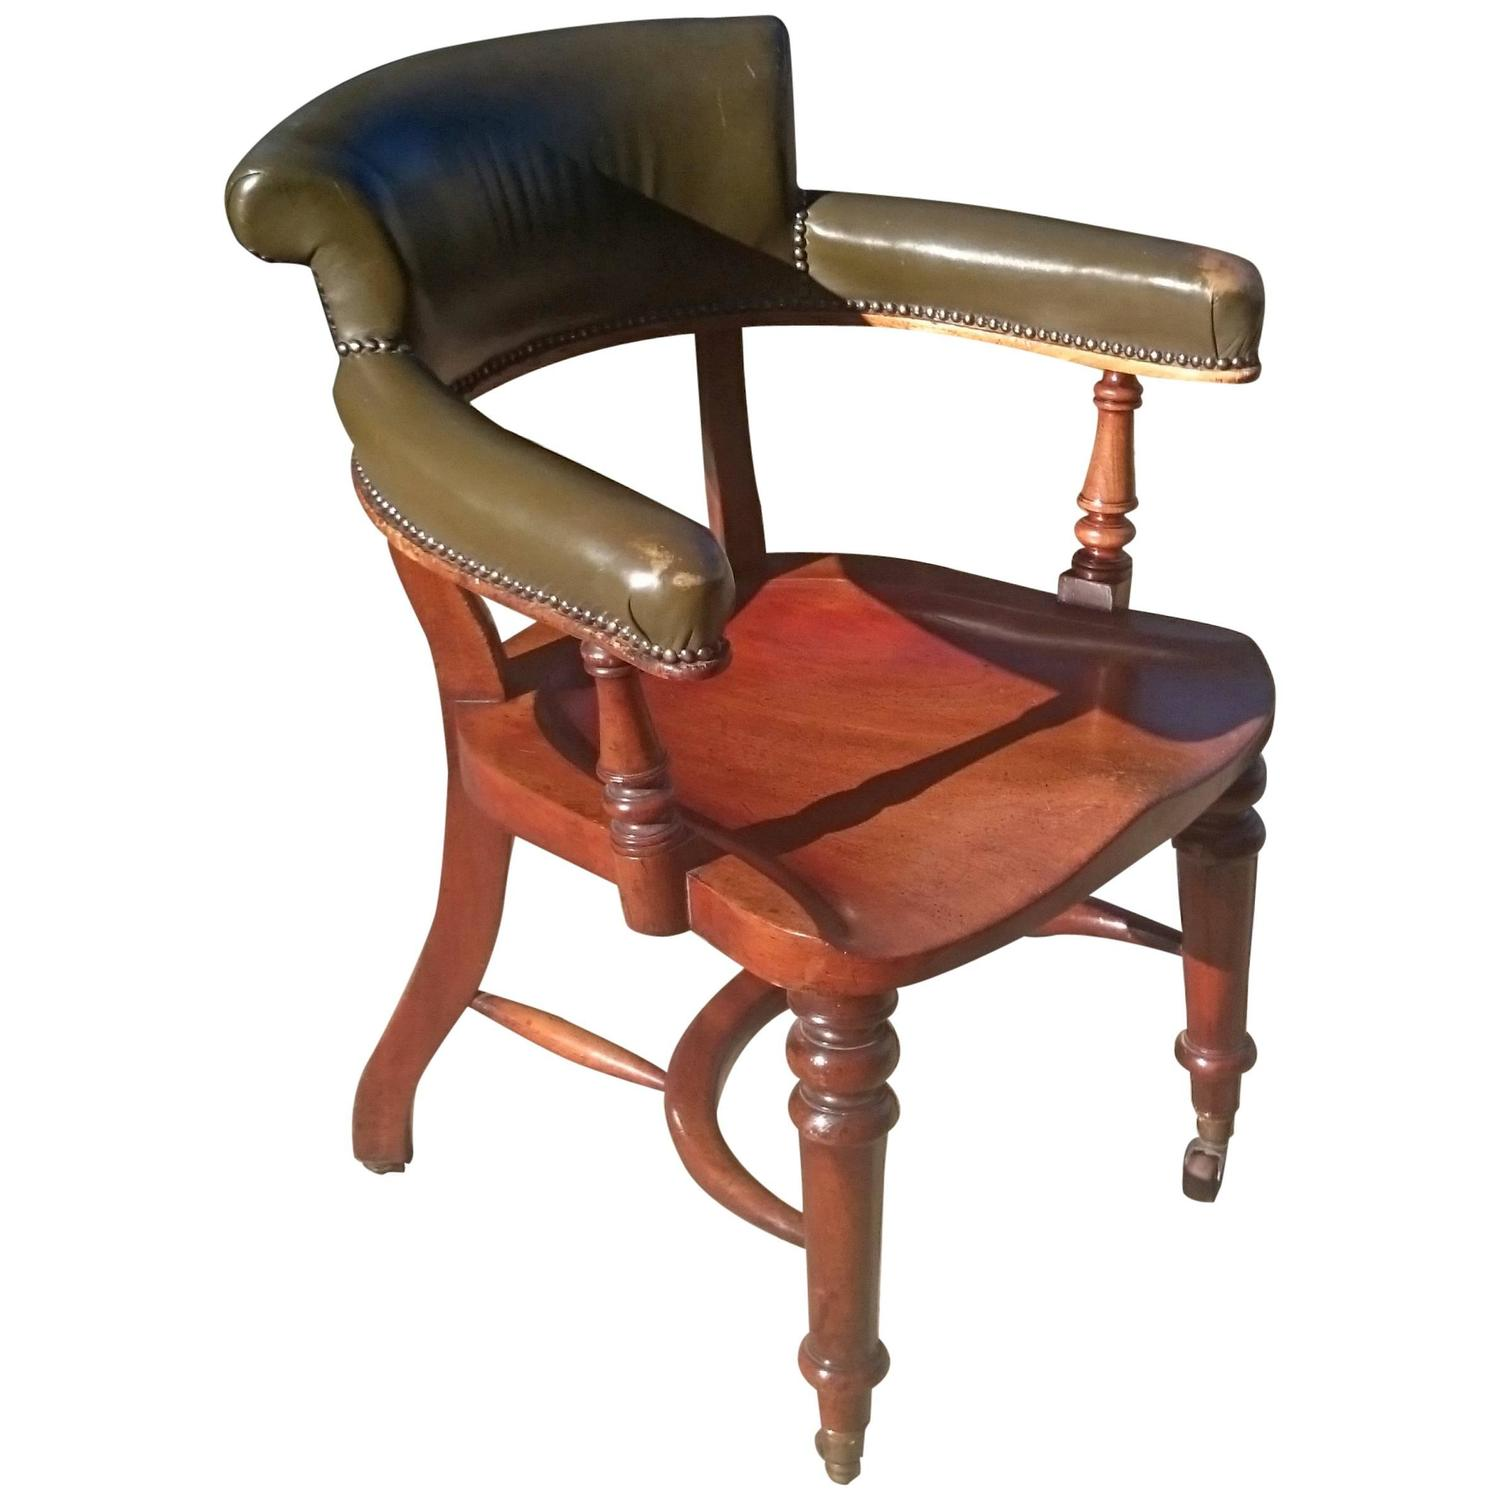 Antique club chair or captains chair for sale at 1stdibs